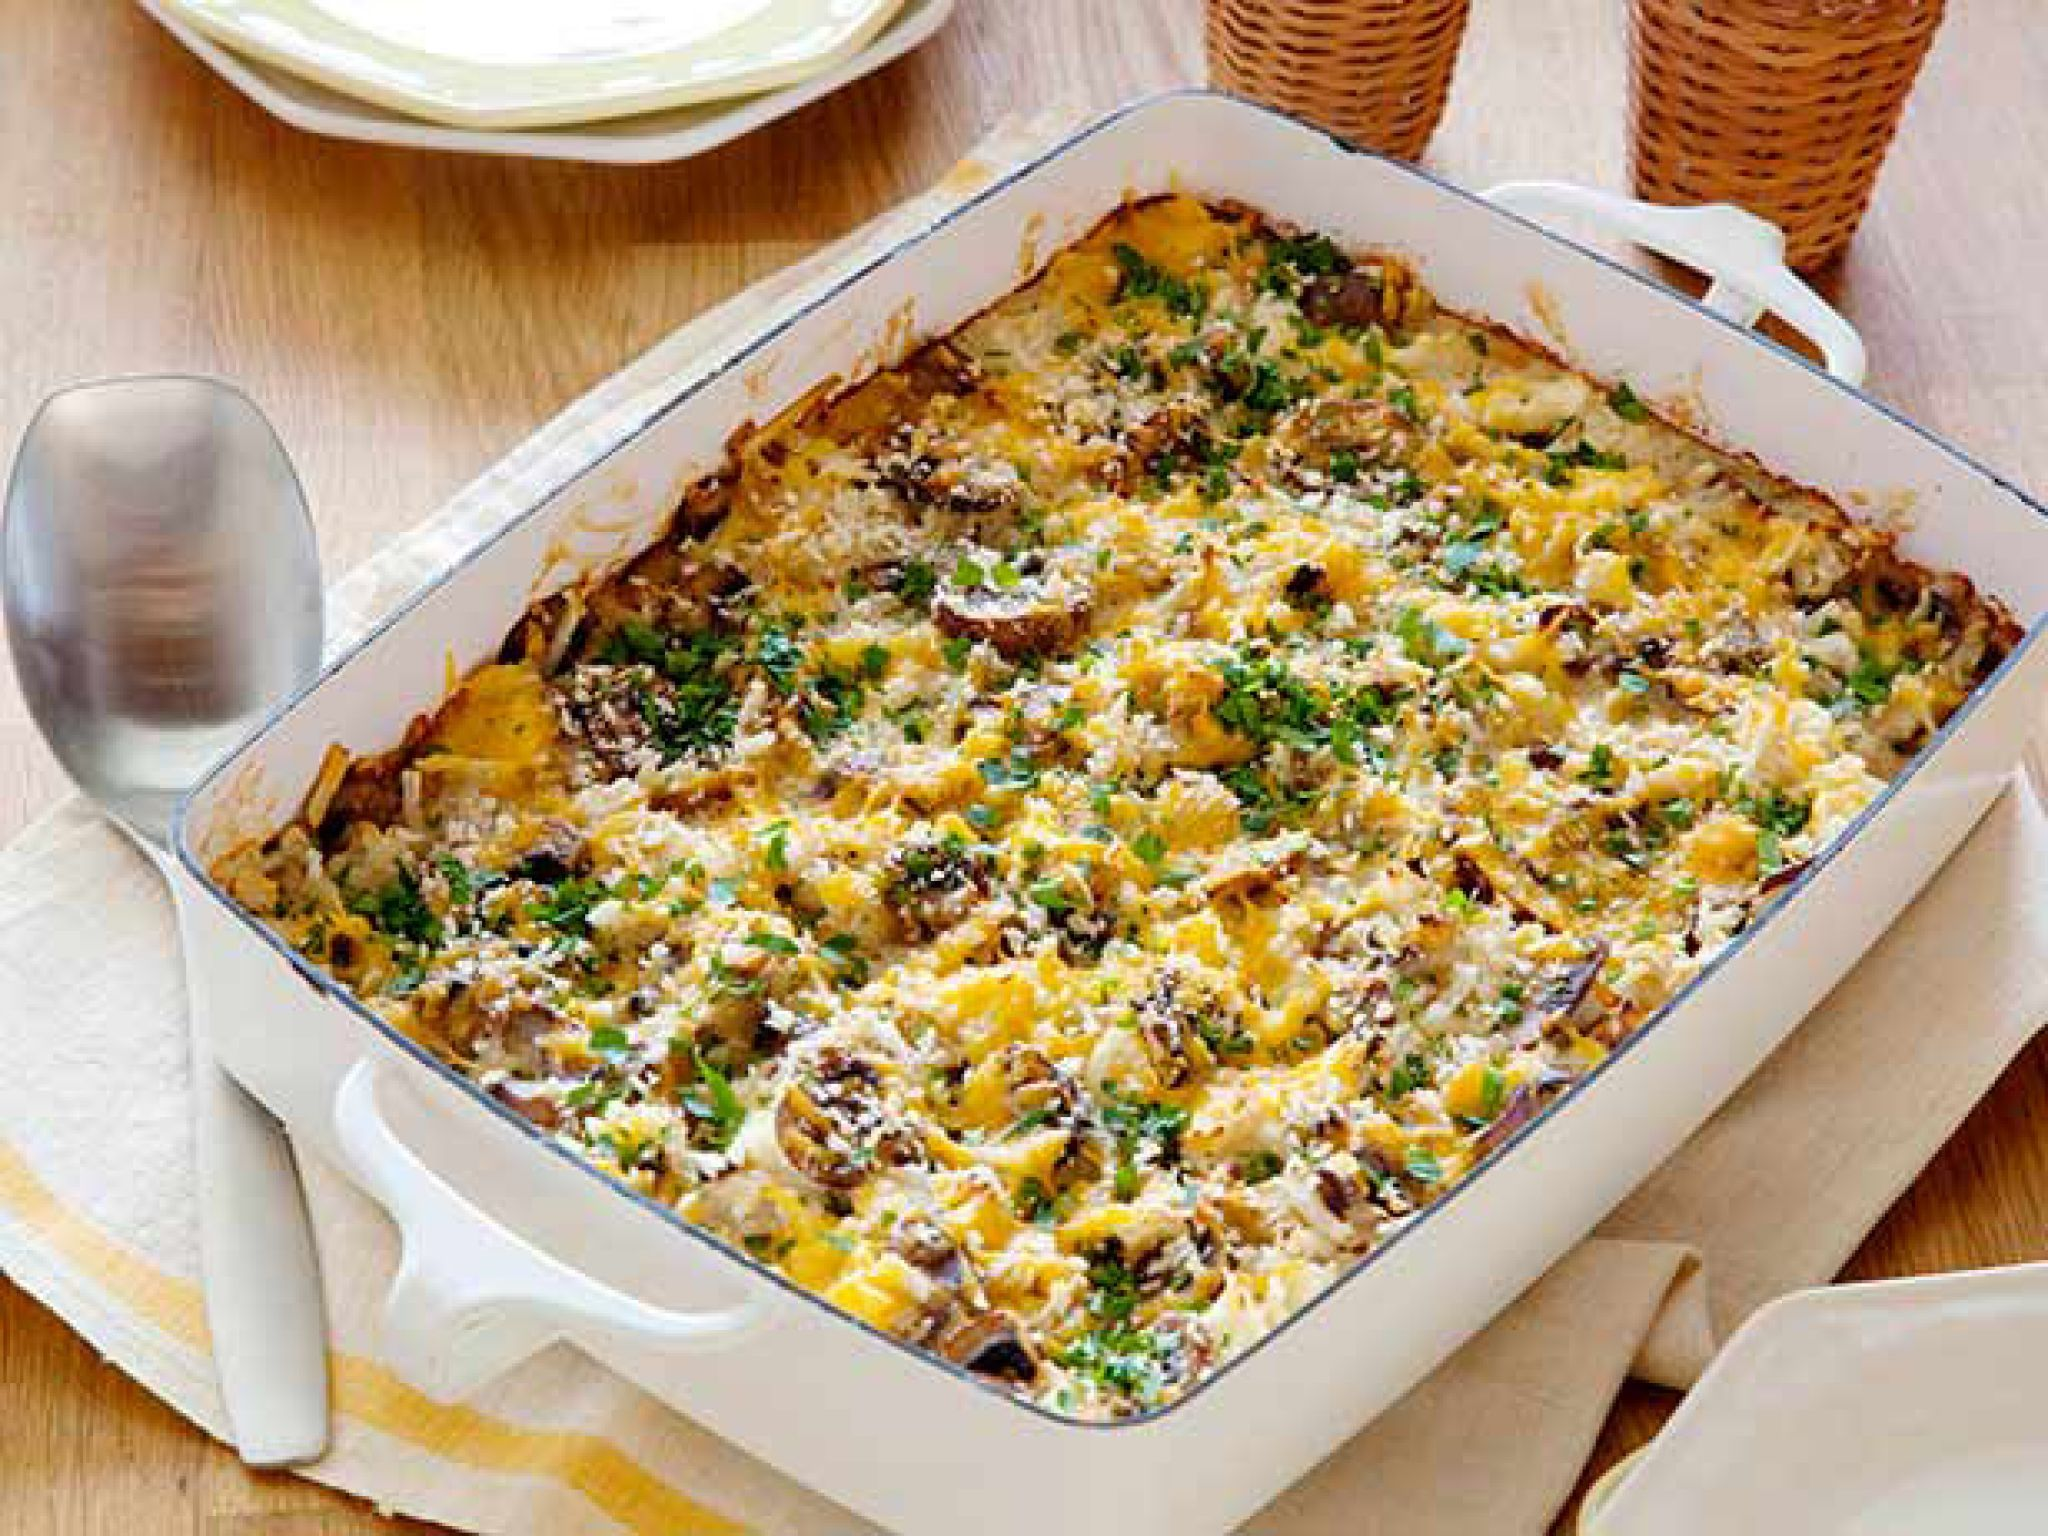 Healthy Casserole Recipes and Ideas Food Network